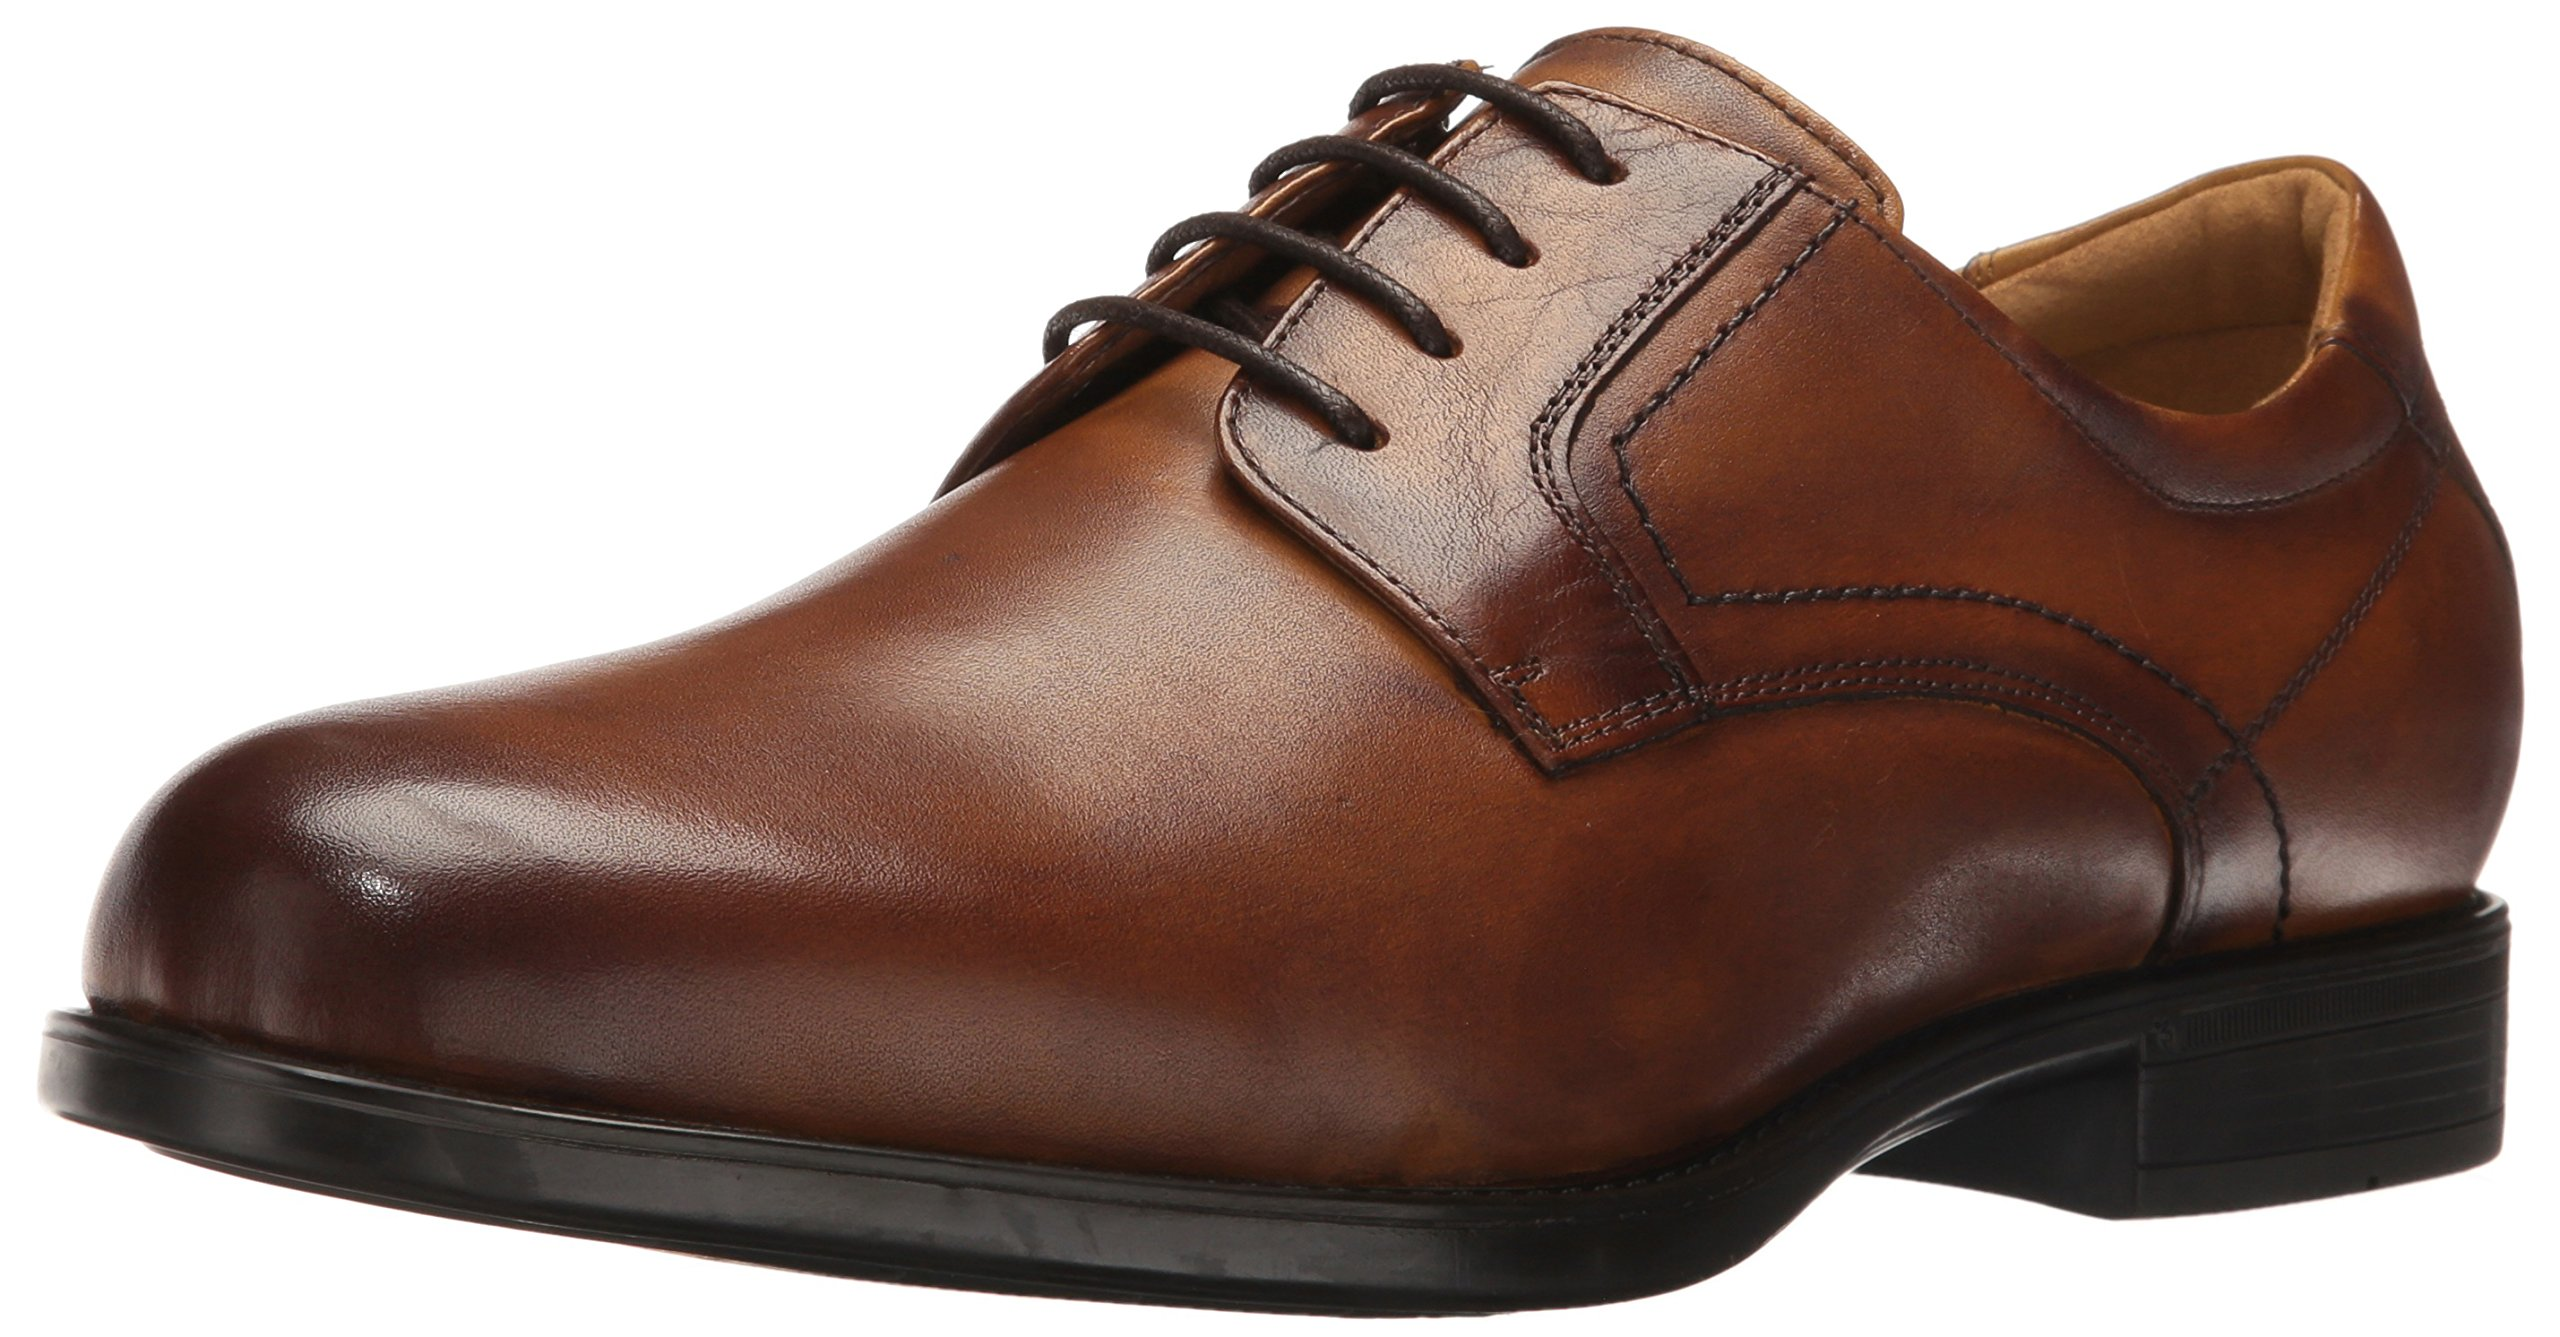 Florsheim Men's Medfield Plain Toe Oxford Dress Shoe, Cognac, 8 D US by Florsheim (Image #1)